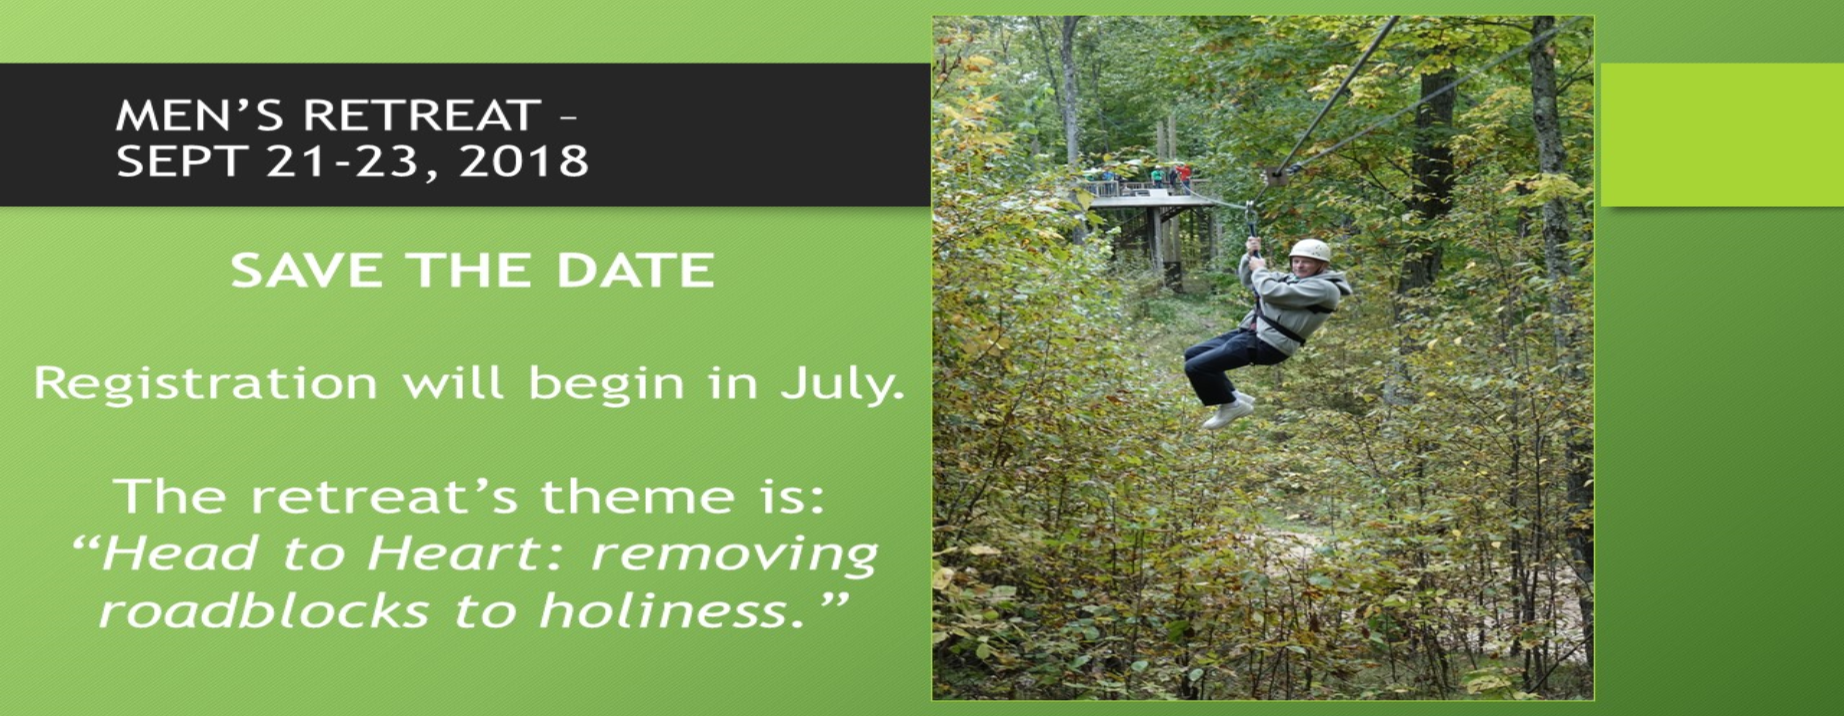 Men's Retreat Green Slide Save the Date Banner 2018.png